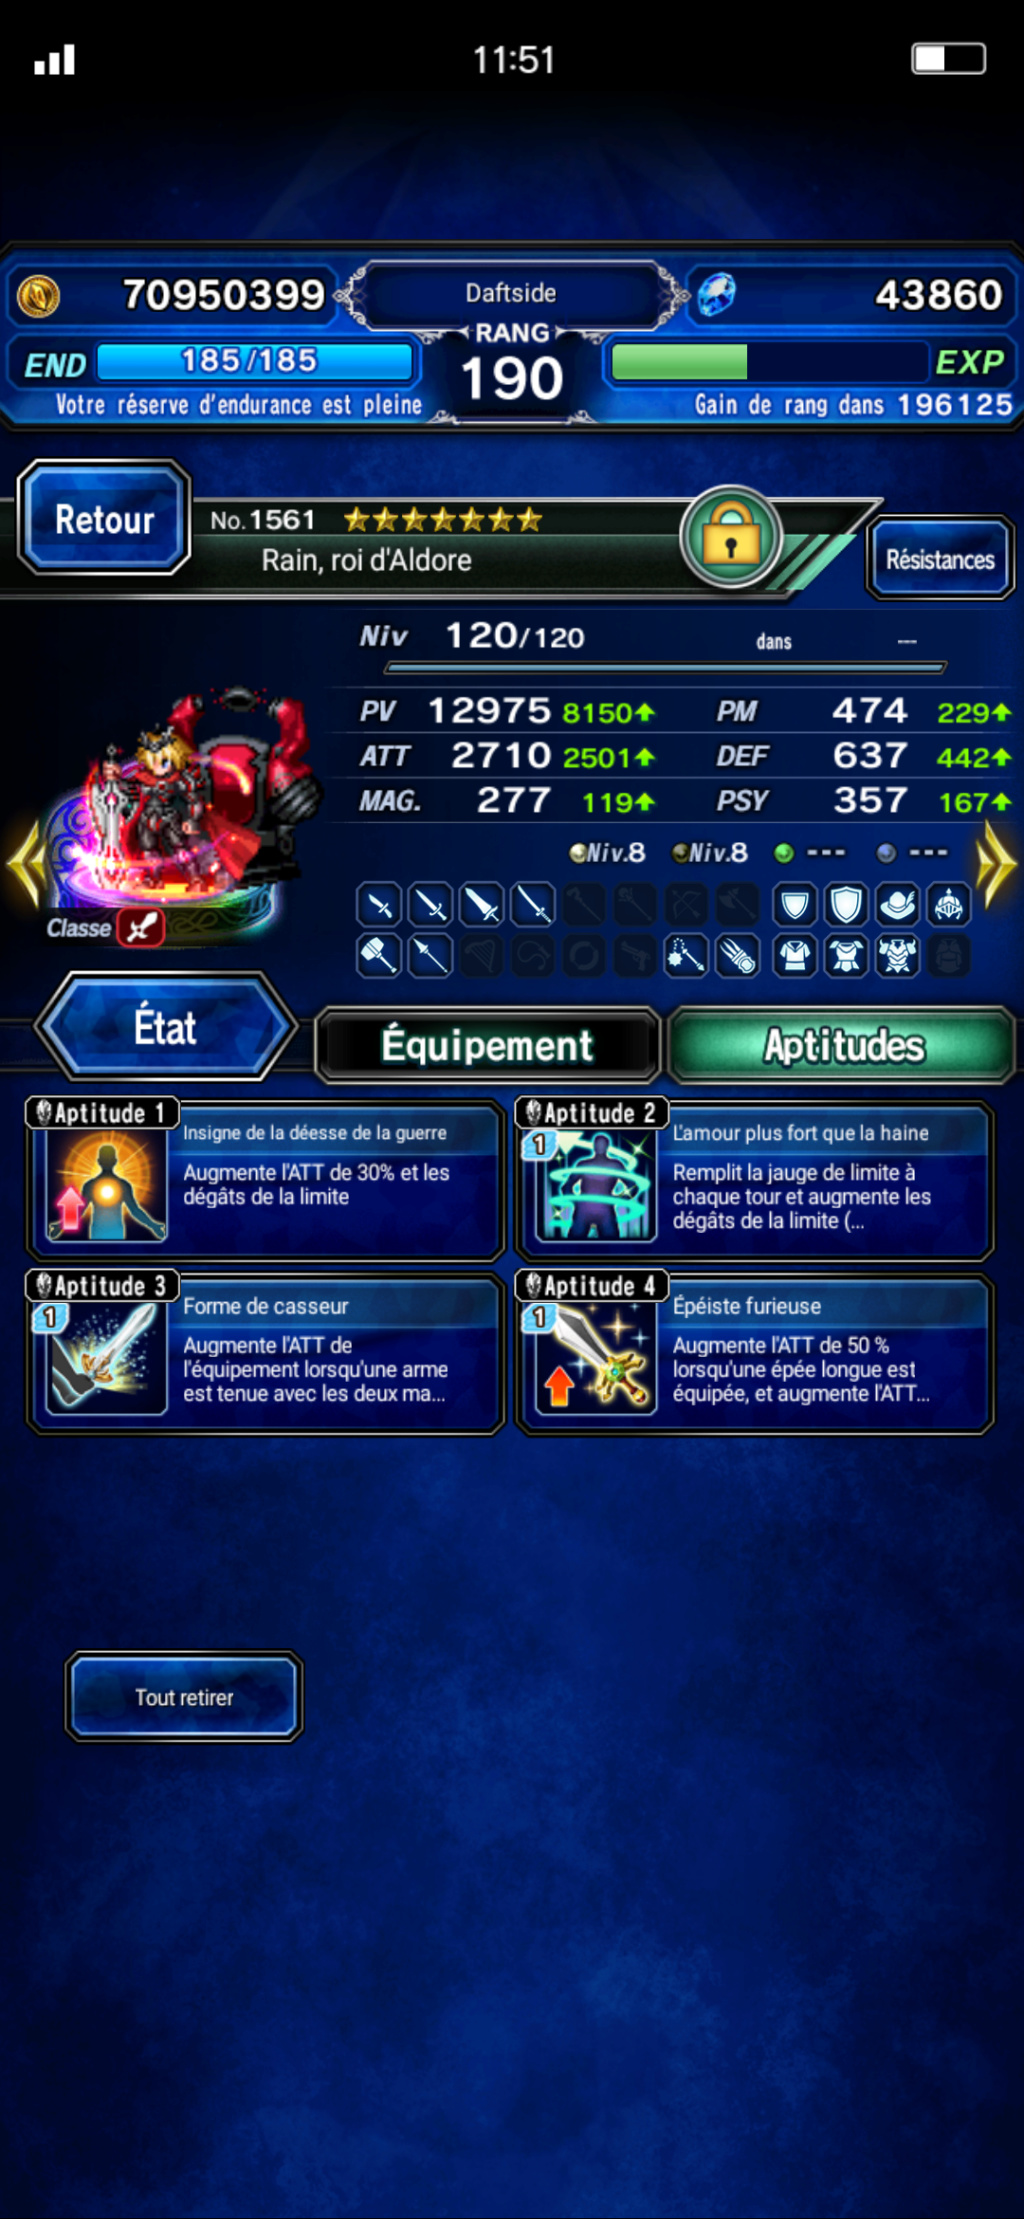 Invocations du moment - FFBE (AKRain) - du 07/11 au 21/11/19 - Page 3 Screen11